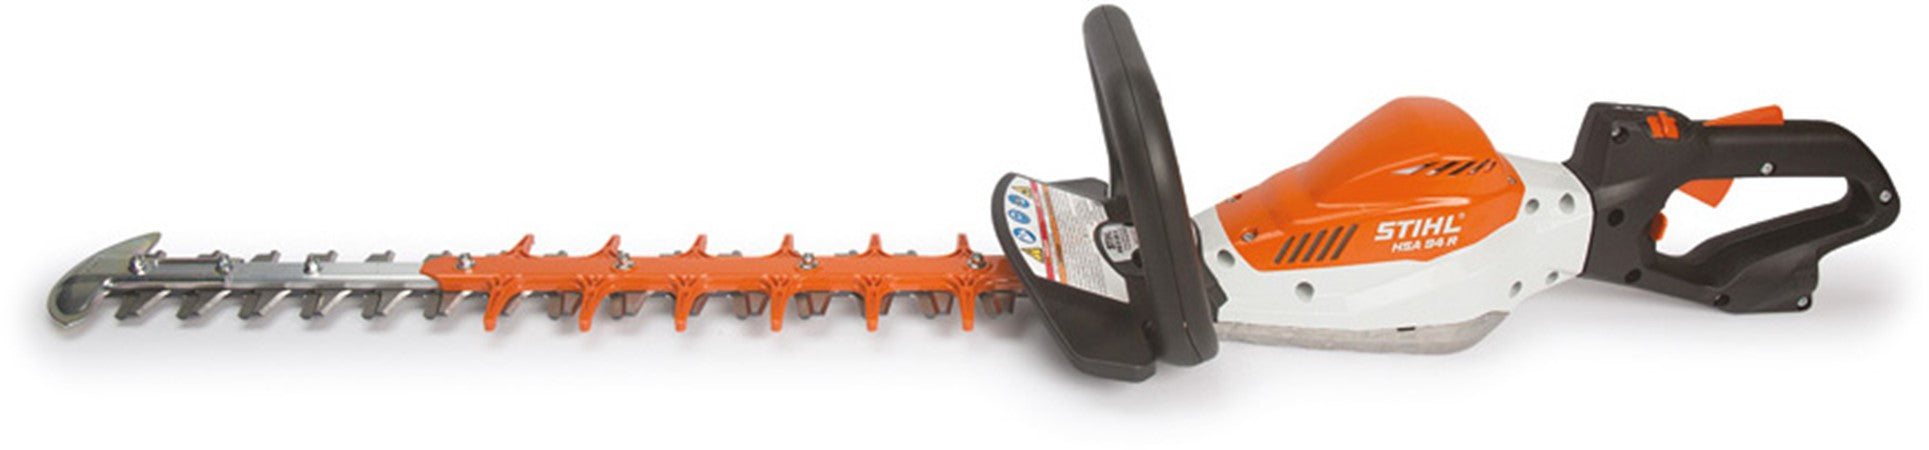 Stihl HSA 94 T Battery Hedge Trimmer